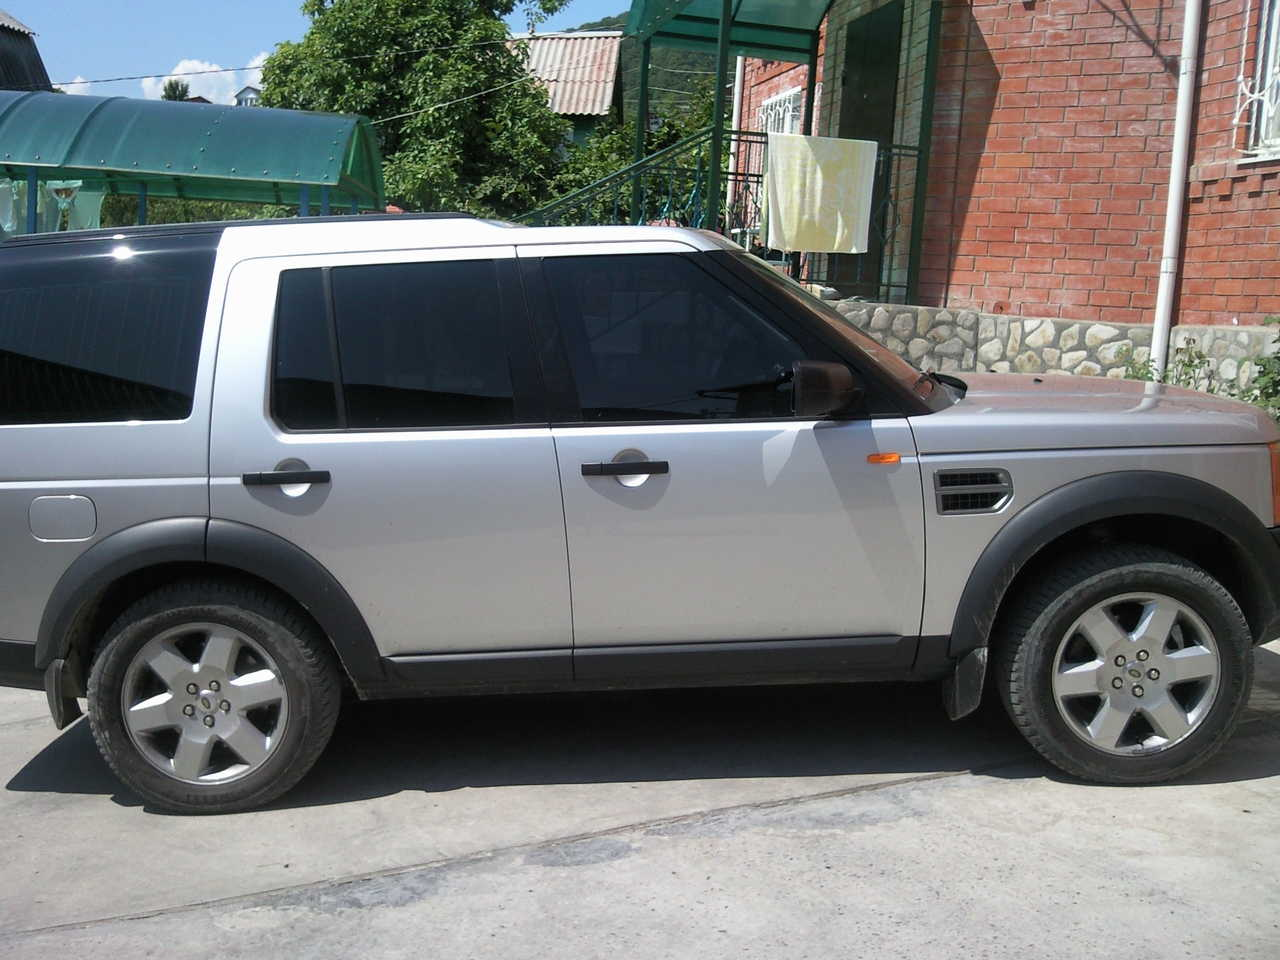 Used 2005 Land Rover Discovery Photos 4400cc Gasoline